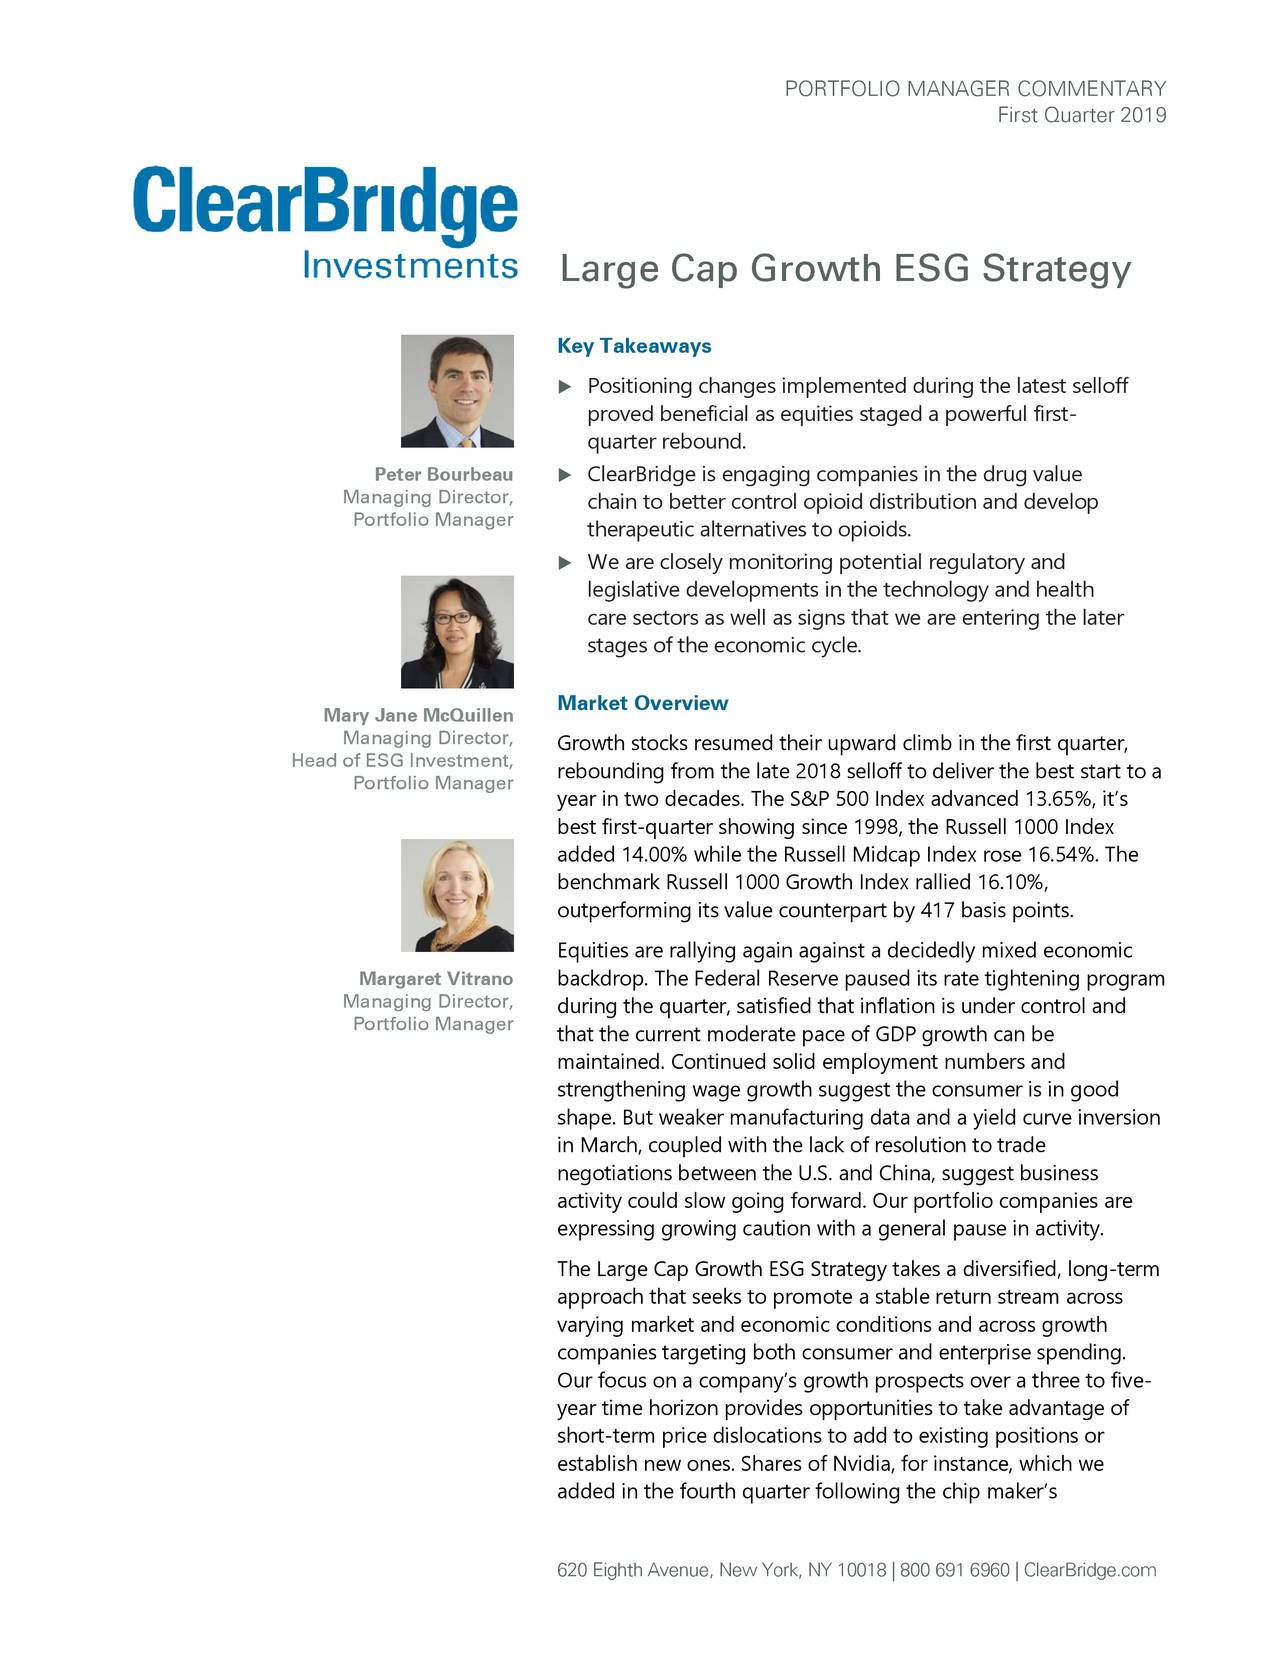 First Quarter 2019 Large Cap Growth ESG Strategy Key Takeaways  Positioning changes implemented during the latest selloff proved beneficial as equities staged a powerful fir-t quarter rebound . Peter Bourbeau  ClearBridge is engaging companies in the drug value Managing Director, chain to better control opioid distribution and develop Portfolio Manager therapeutic alternatives to opioids .  We are closely monitoring potential regulatory and legislative developments in the technology and health care sectors as well as signs that we arentering the later stages of the economic cycle. Market Overview Mary Jane McQuillen Managing Director, Growth stocks resumed their upward climb in the first quarter, Head of ESG Investment, Portfolio Manager rebounding from the late 2018 selloff to deliver the best start to a year in two decades. The S&P 500 Index advanced 13.65%, it's best first-quarter showing since 1998, the Russell 1000 Index added 14.00% while the Russell Midcap Index rose 16.54%. The benchmark Russell 1000 Growth Index rallied 16.10%, outperforming its value counterpart by 417 basis points. Equities are rallying again against a decidedly mixed economic Margaret Vitrano backdrop. The Federal Reserve paused its rate tightening program Managing Director, during the quarter, satisfied that inflation is under control and Portfolio Manager that the current moderate pace of GDP growth can be maintained. Continued solid employment numbers and strengthening wage growth suggest the consumer is in good shape. But weaker manufacturing data and a yield curve inversion in March, coupled with the lack of resolution to trade negotiations between the U.S. and China, suggest business activity could slow going forward. Our portfolio companies are expressing growing caution with a general pause in activity. The Large Cap Growth ESG Strategy takes a diversified, long-term approach that seeks to promote a stable return stream across varying market and economic conditions and across growth companies targeting both consumer and enterprise spending. Our focus on a company's growth prospects over a three to five- year time horizon provides opportunities to take advantage of short-term price dislocations to add to existing positions or establish new ones. Shares of Nvidia, for instance, which we added in the fourth quarter following the chip maker's 620 Eighth Avenue, New York, NY 10018 | 800 691 6960 | ClearBridge.com